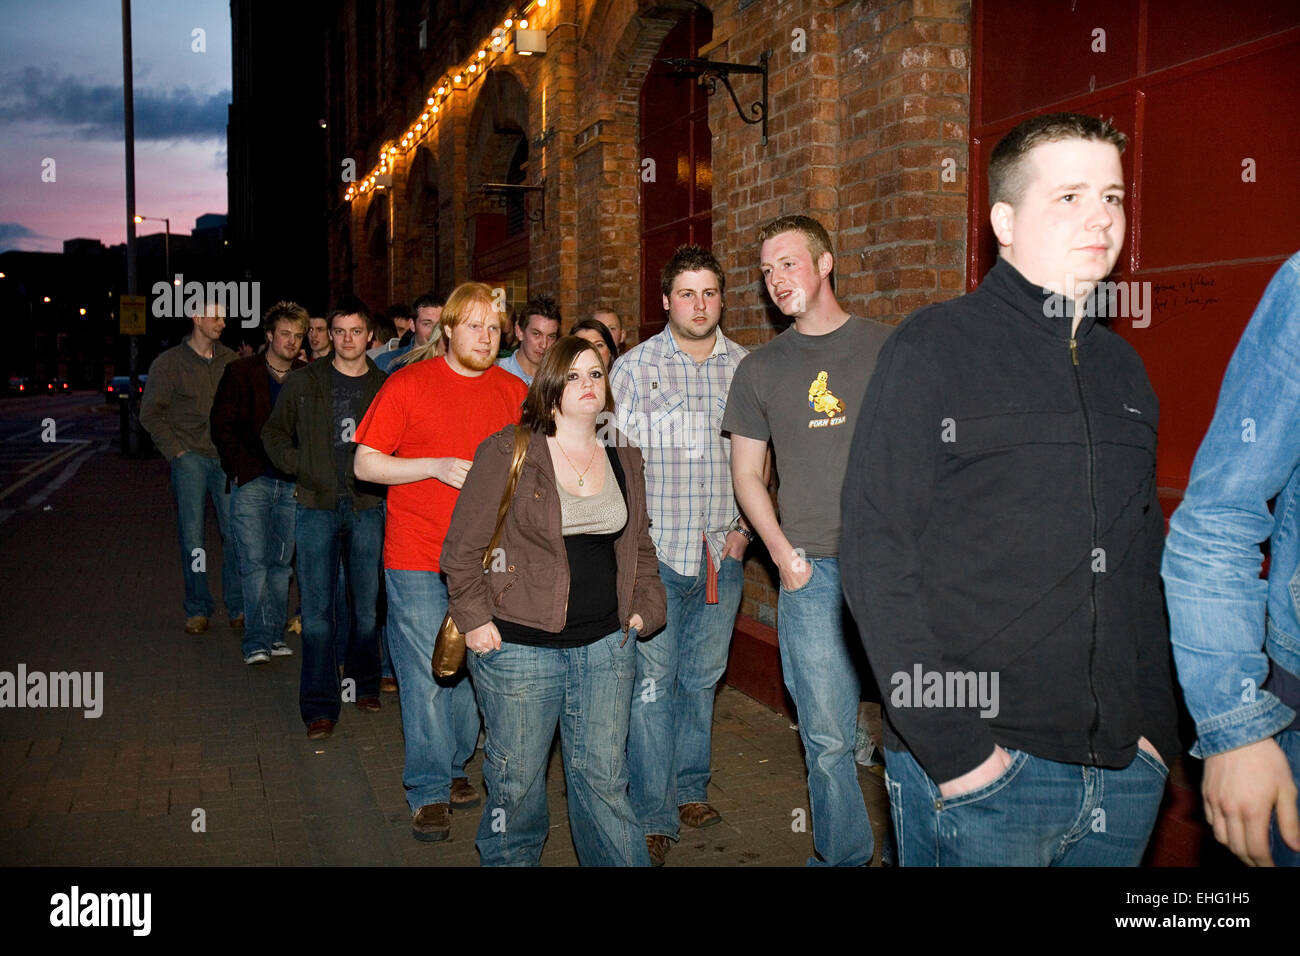 Queue for a gig in Belfast. - Stock Image